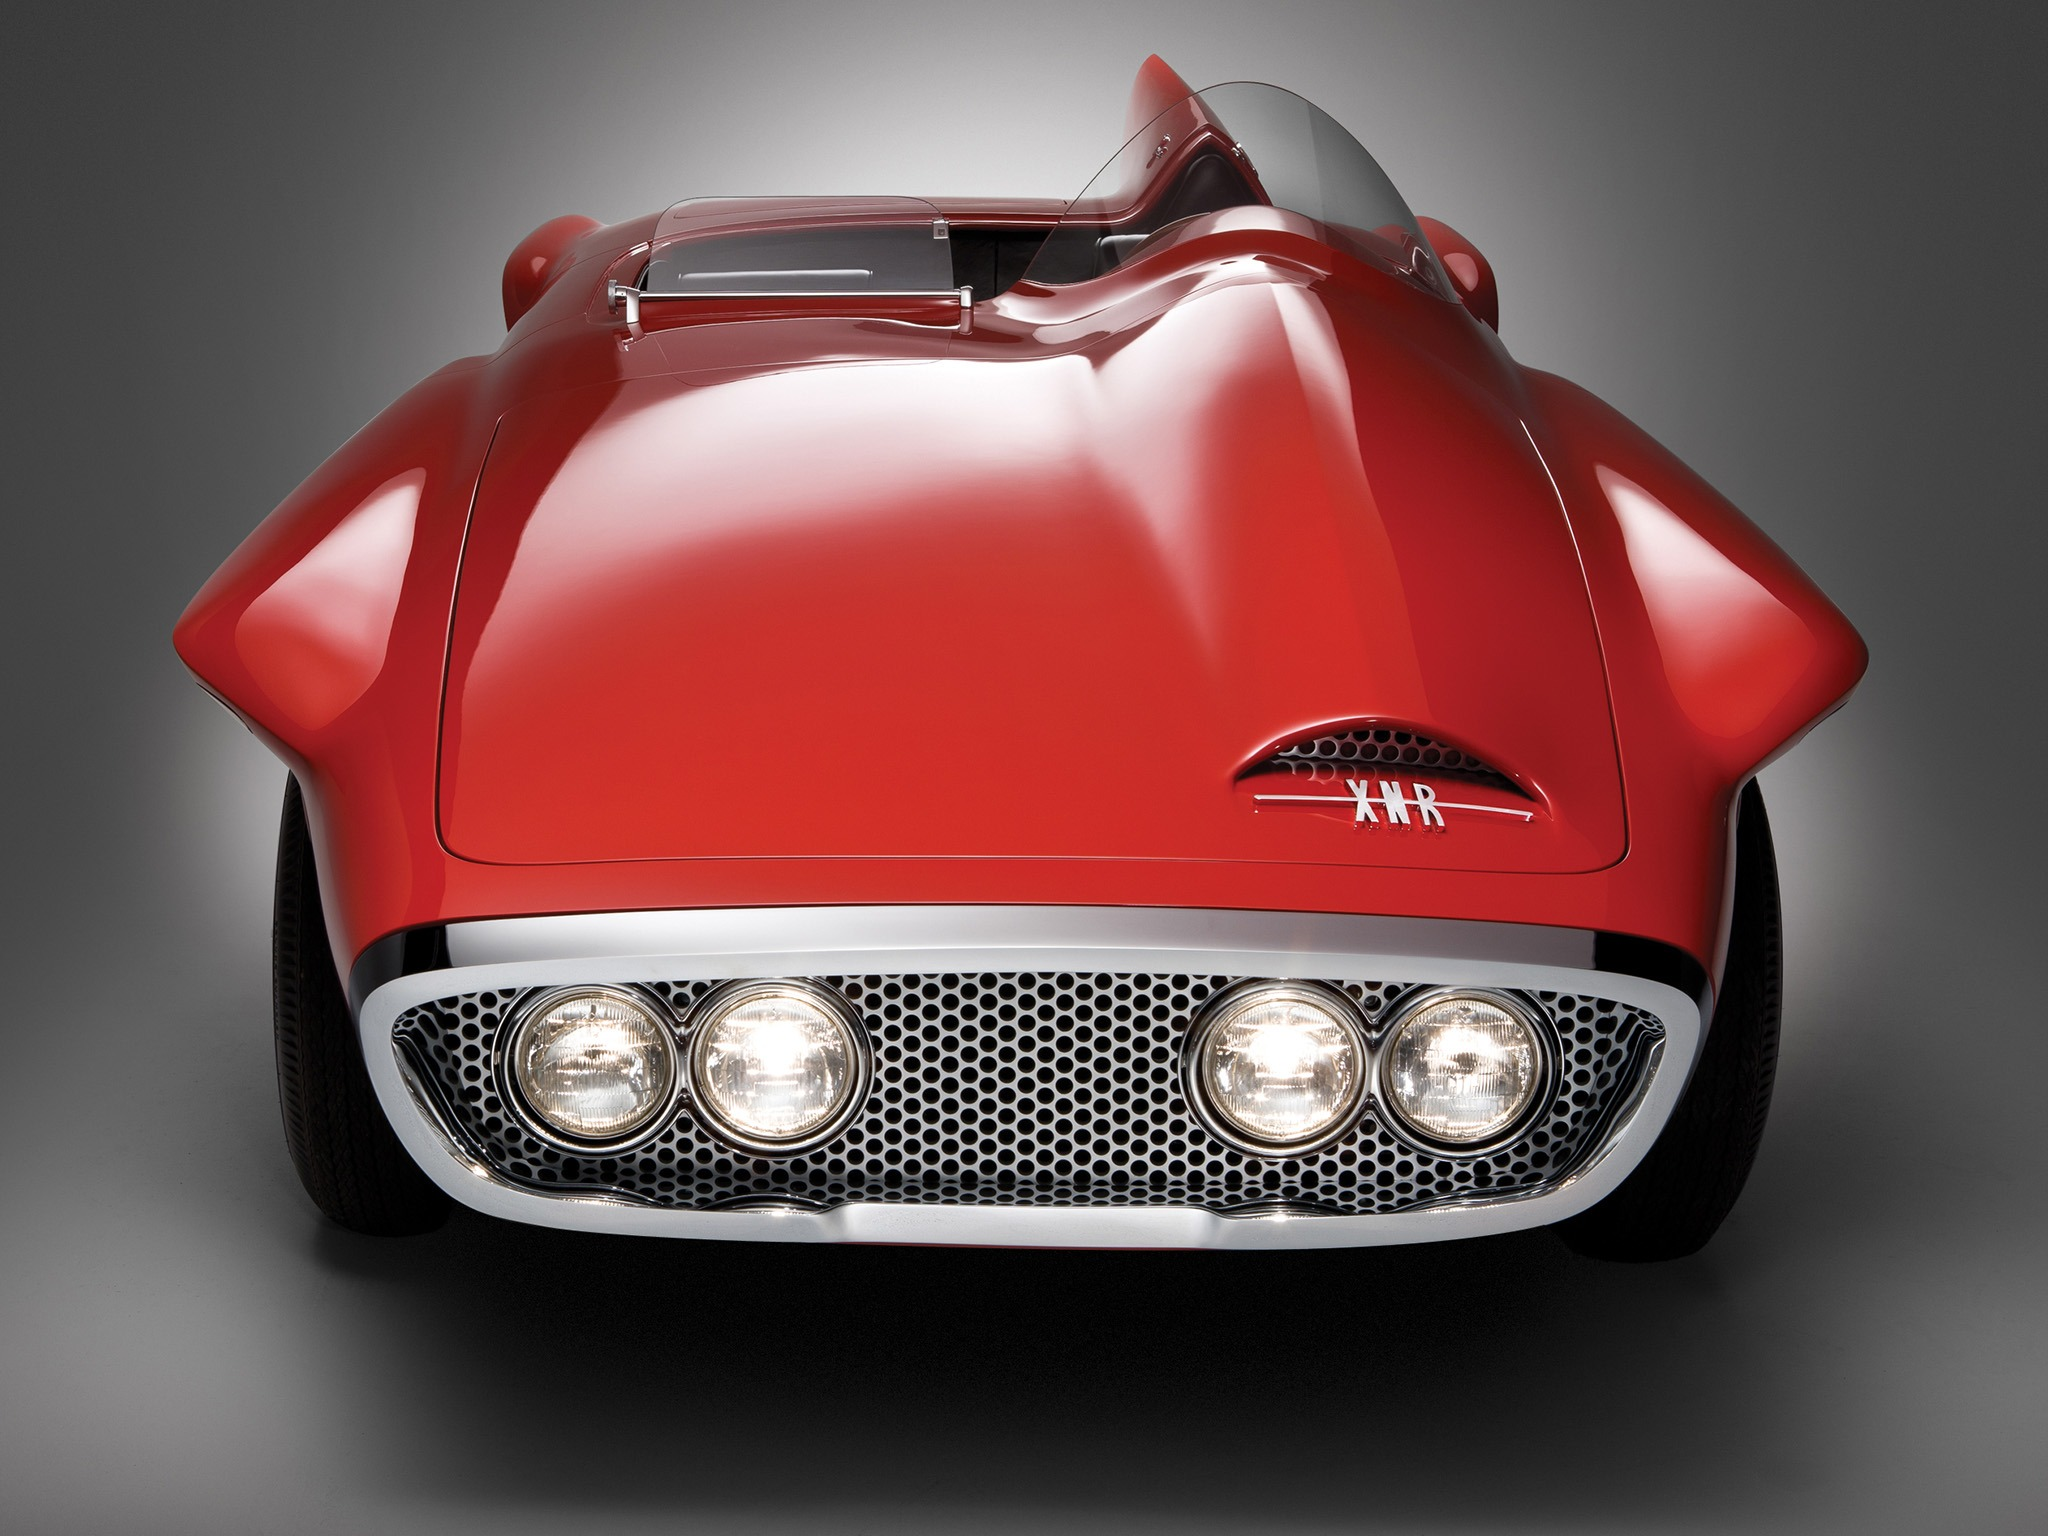 Plymouth Xnr Concept 1960 Old Concept Cars